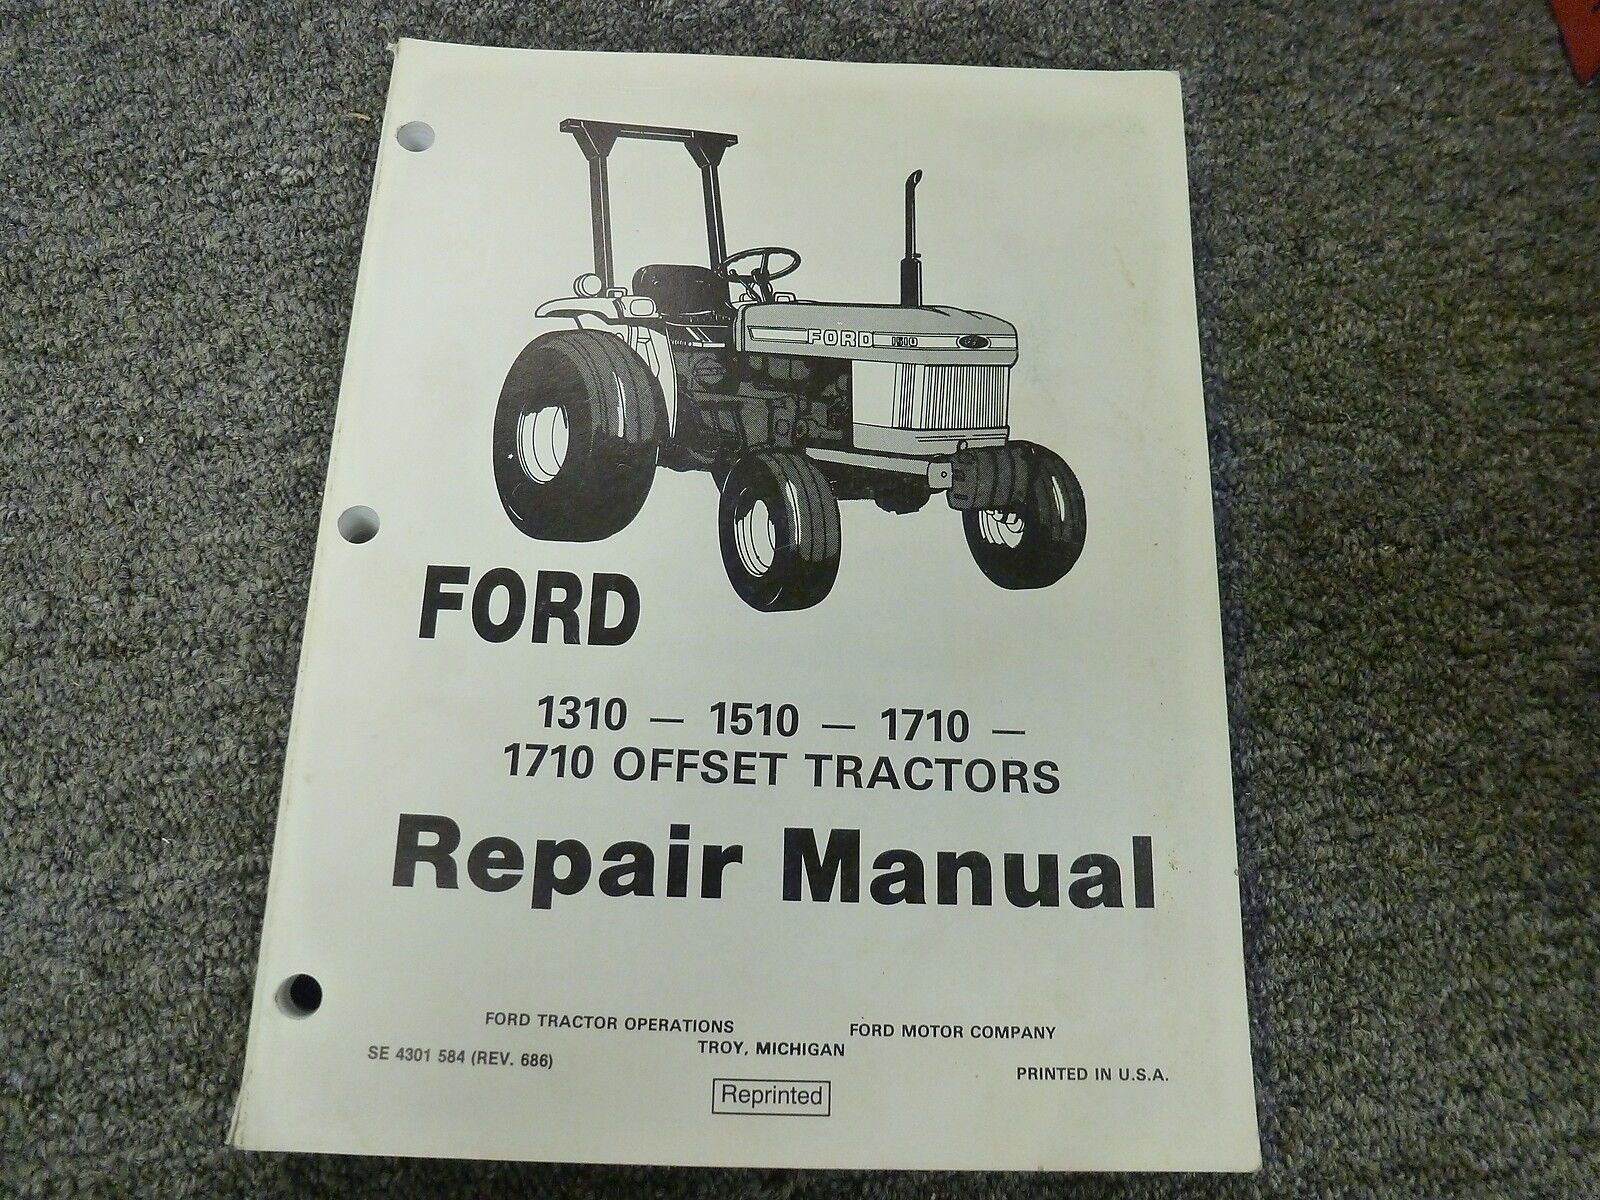 Ford 1310 1510 1710 Compact 1710 Offset Tractor Service Repair Shop Manual  Book | eBay